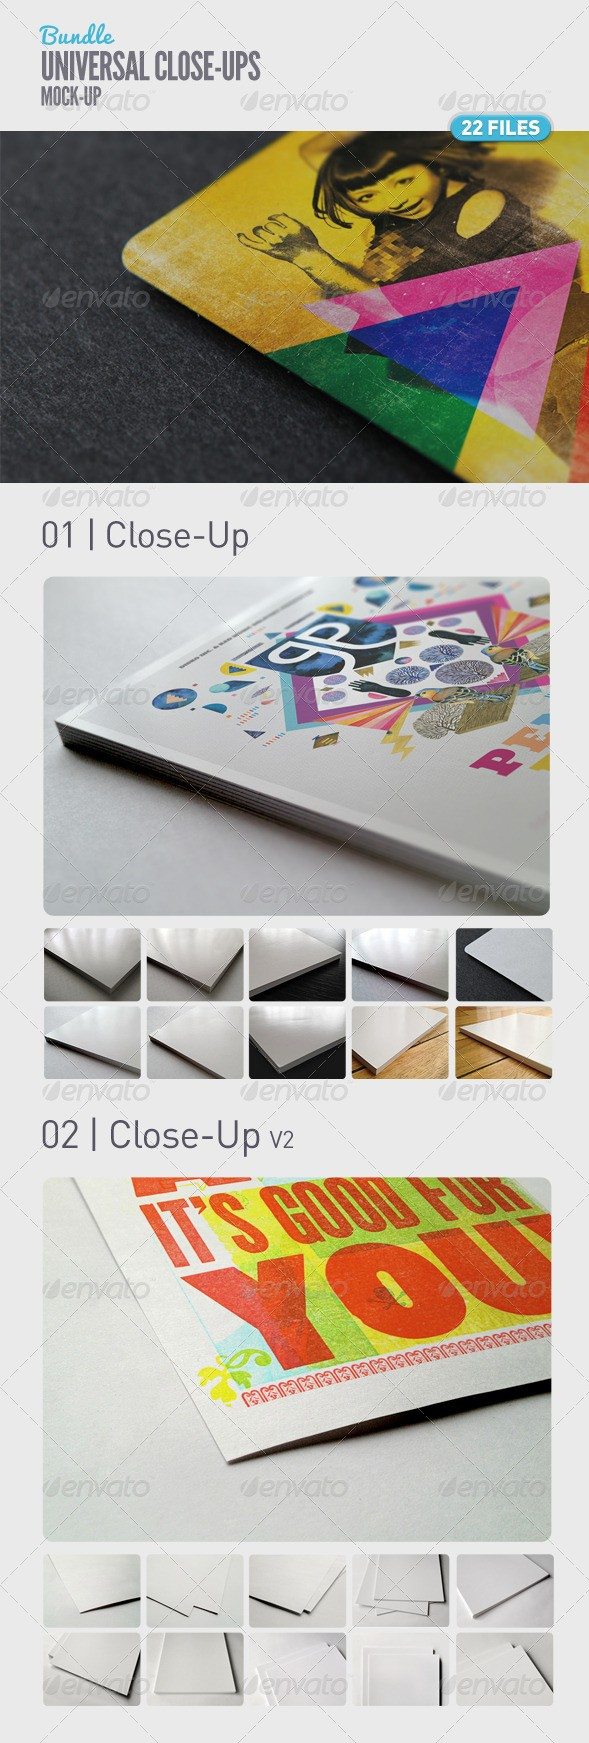 Universal Closeup Mockup Bundle